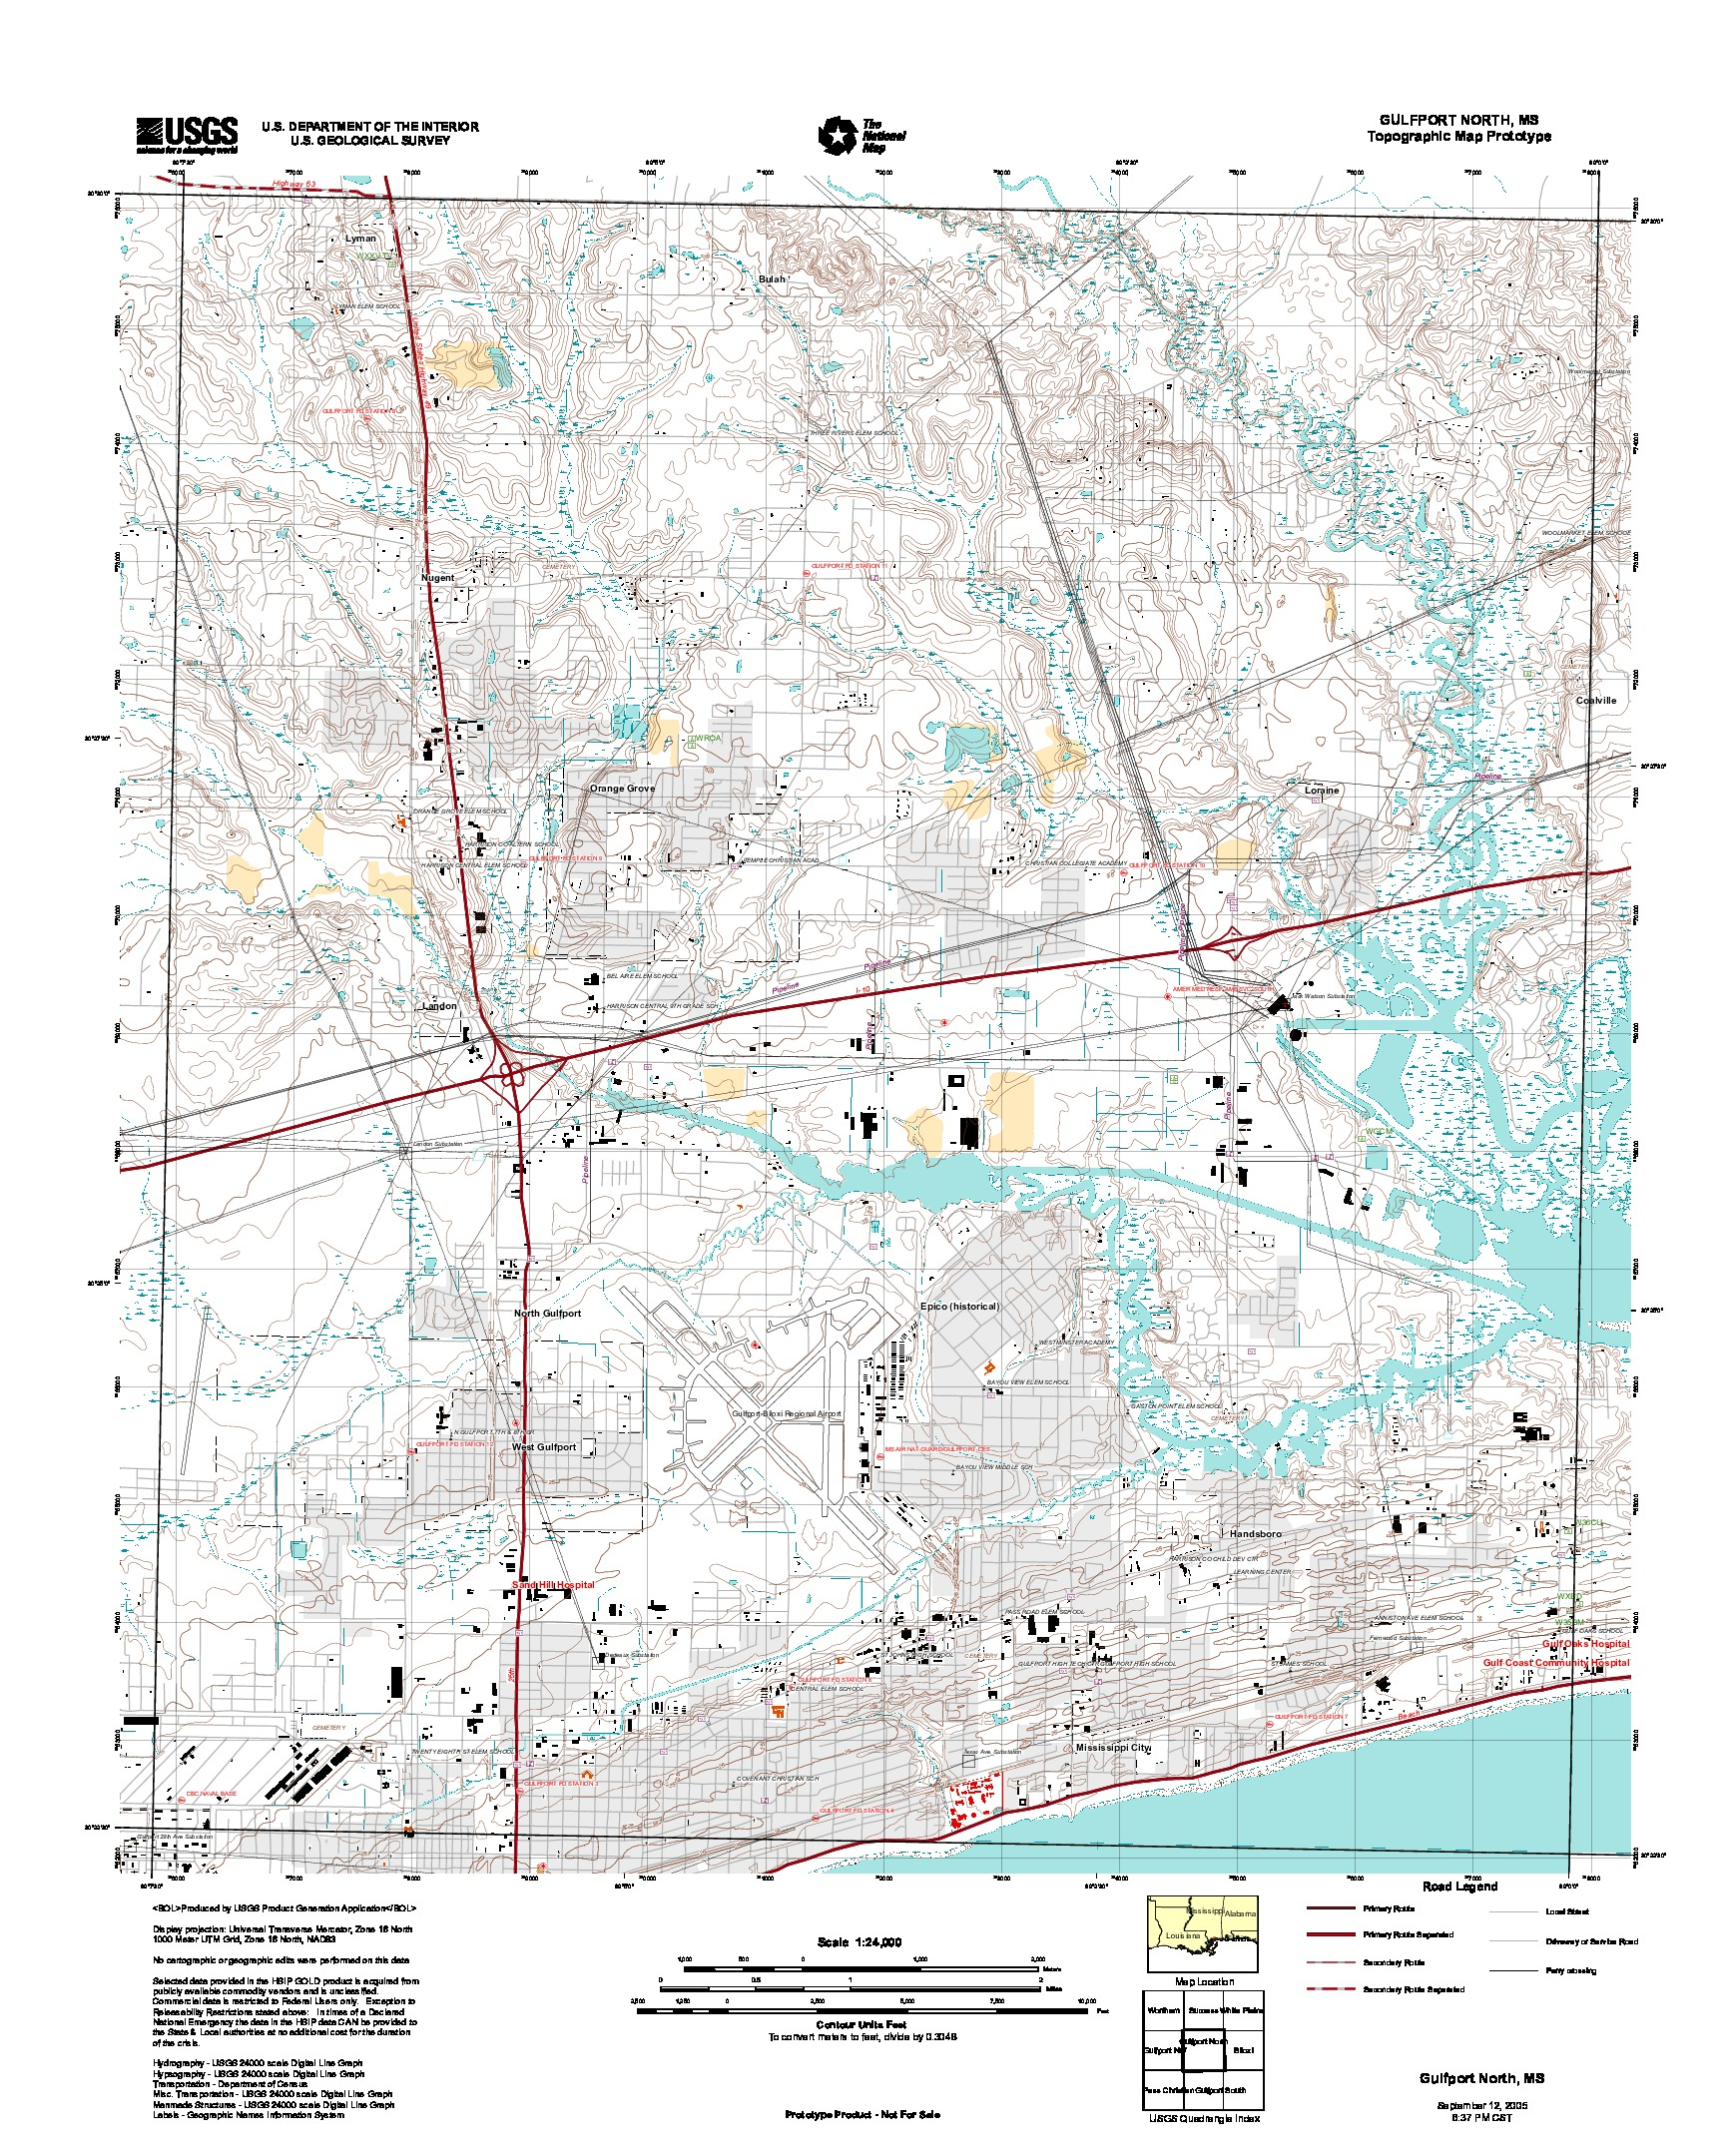 Gulfport North, Topographic Map Prototype, Mississippi, United States, September 12, 2005